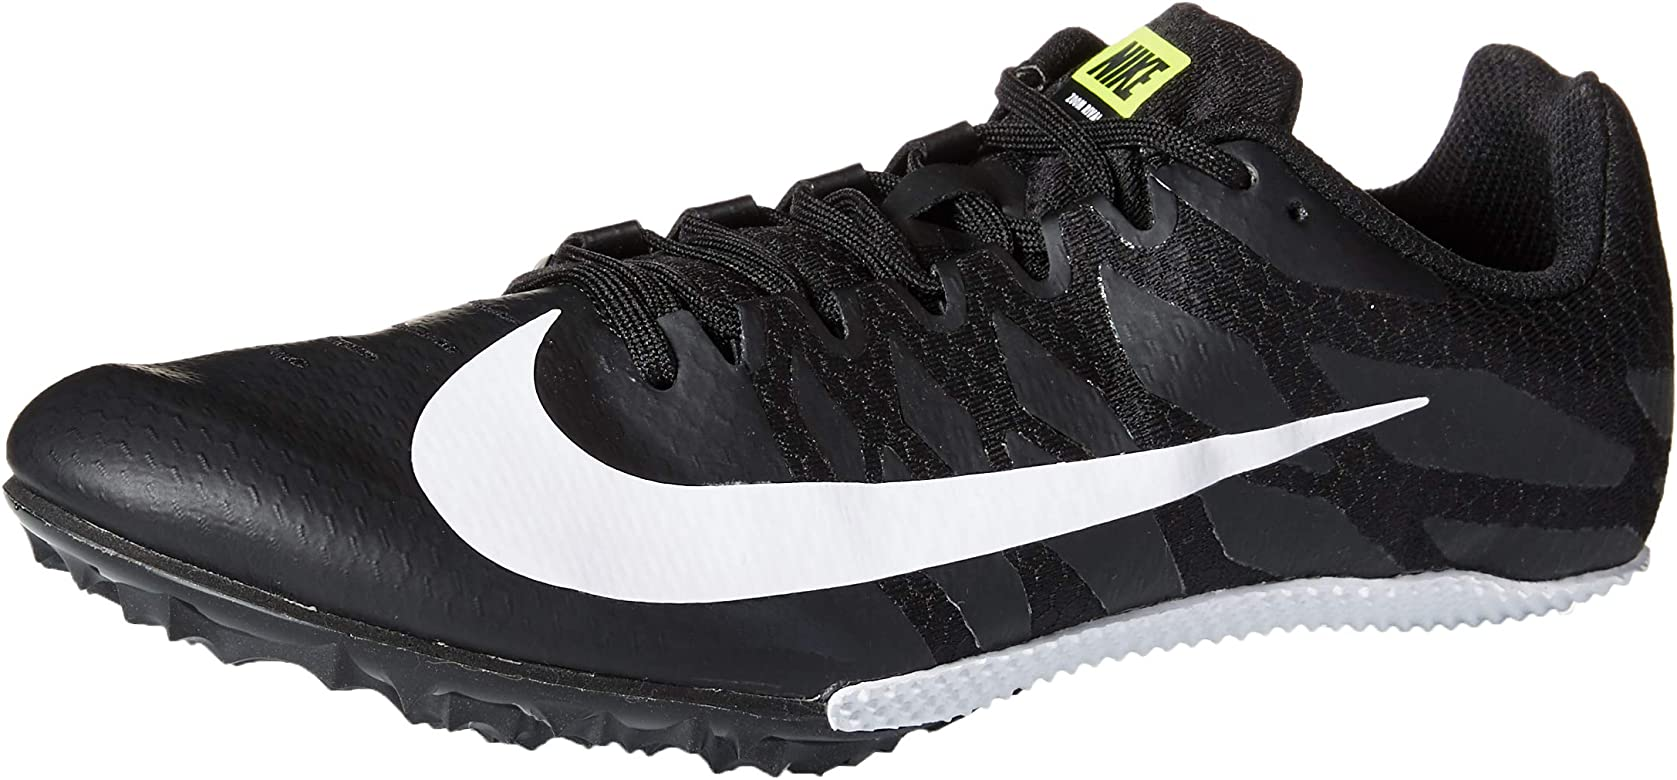 Nike Unisex Zoom Rival S 9 Track Spike